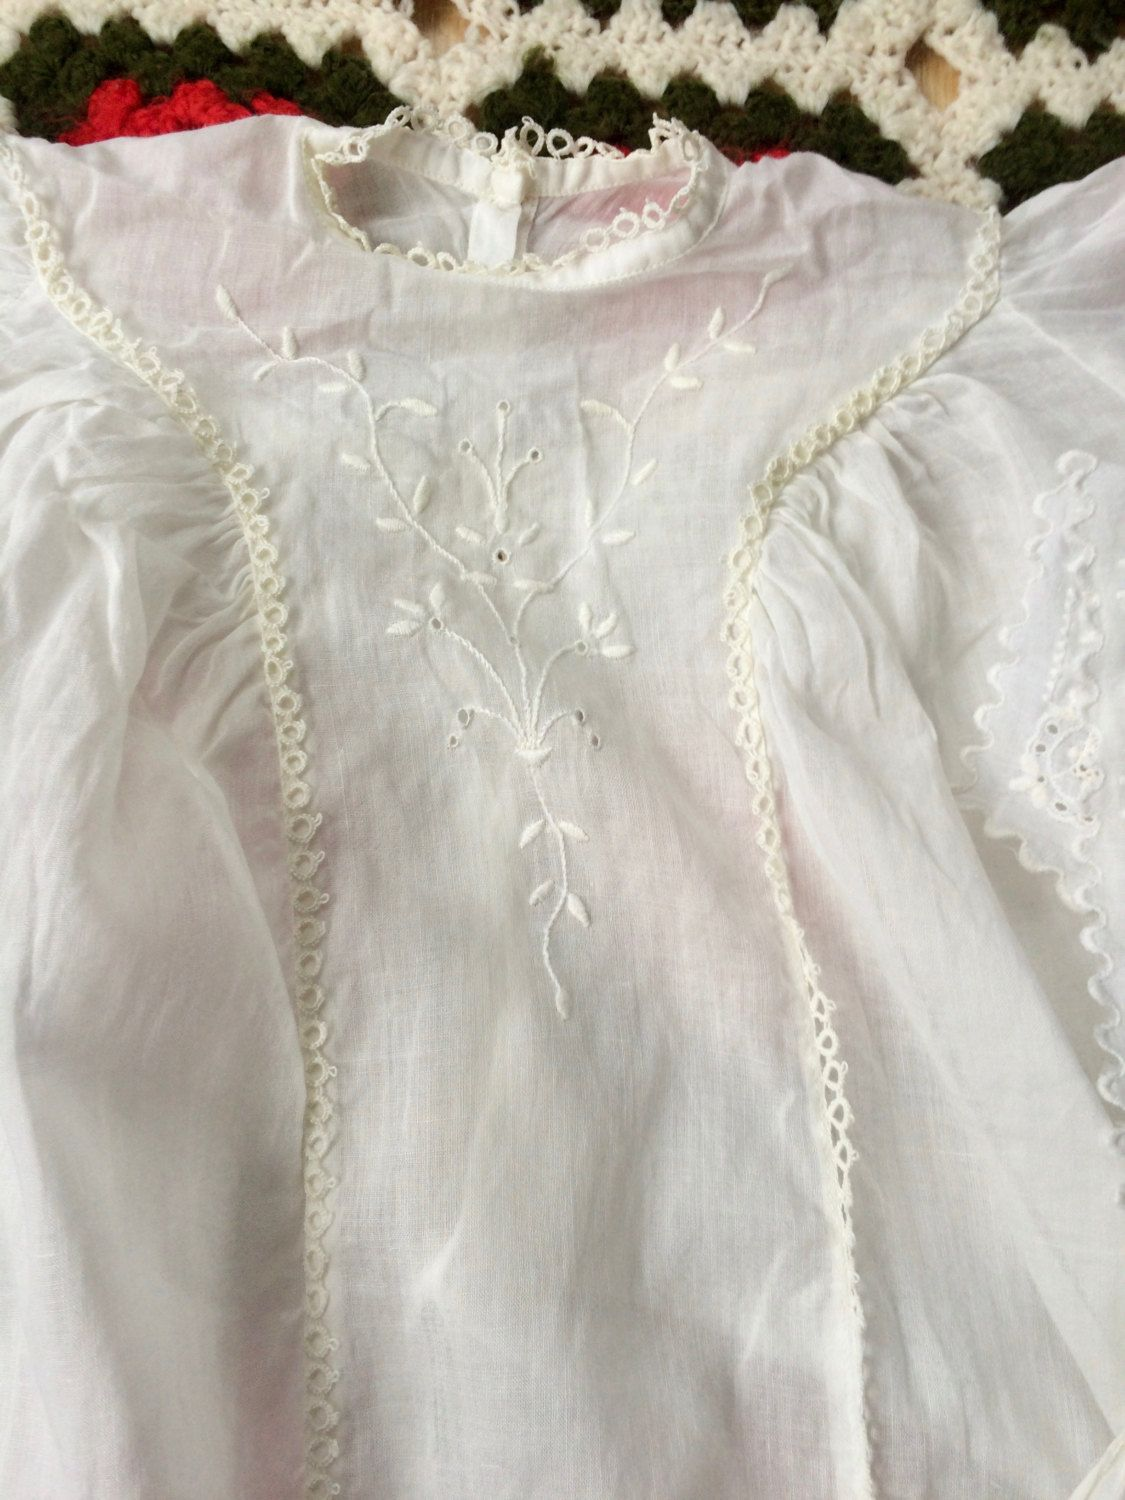 S baby gown u bonnet by lishyloo on etsy vintage kids clothing